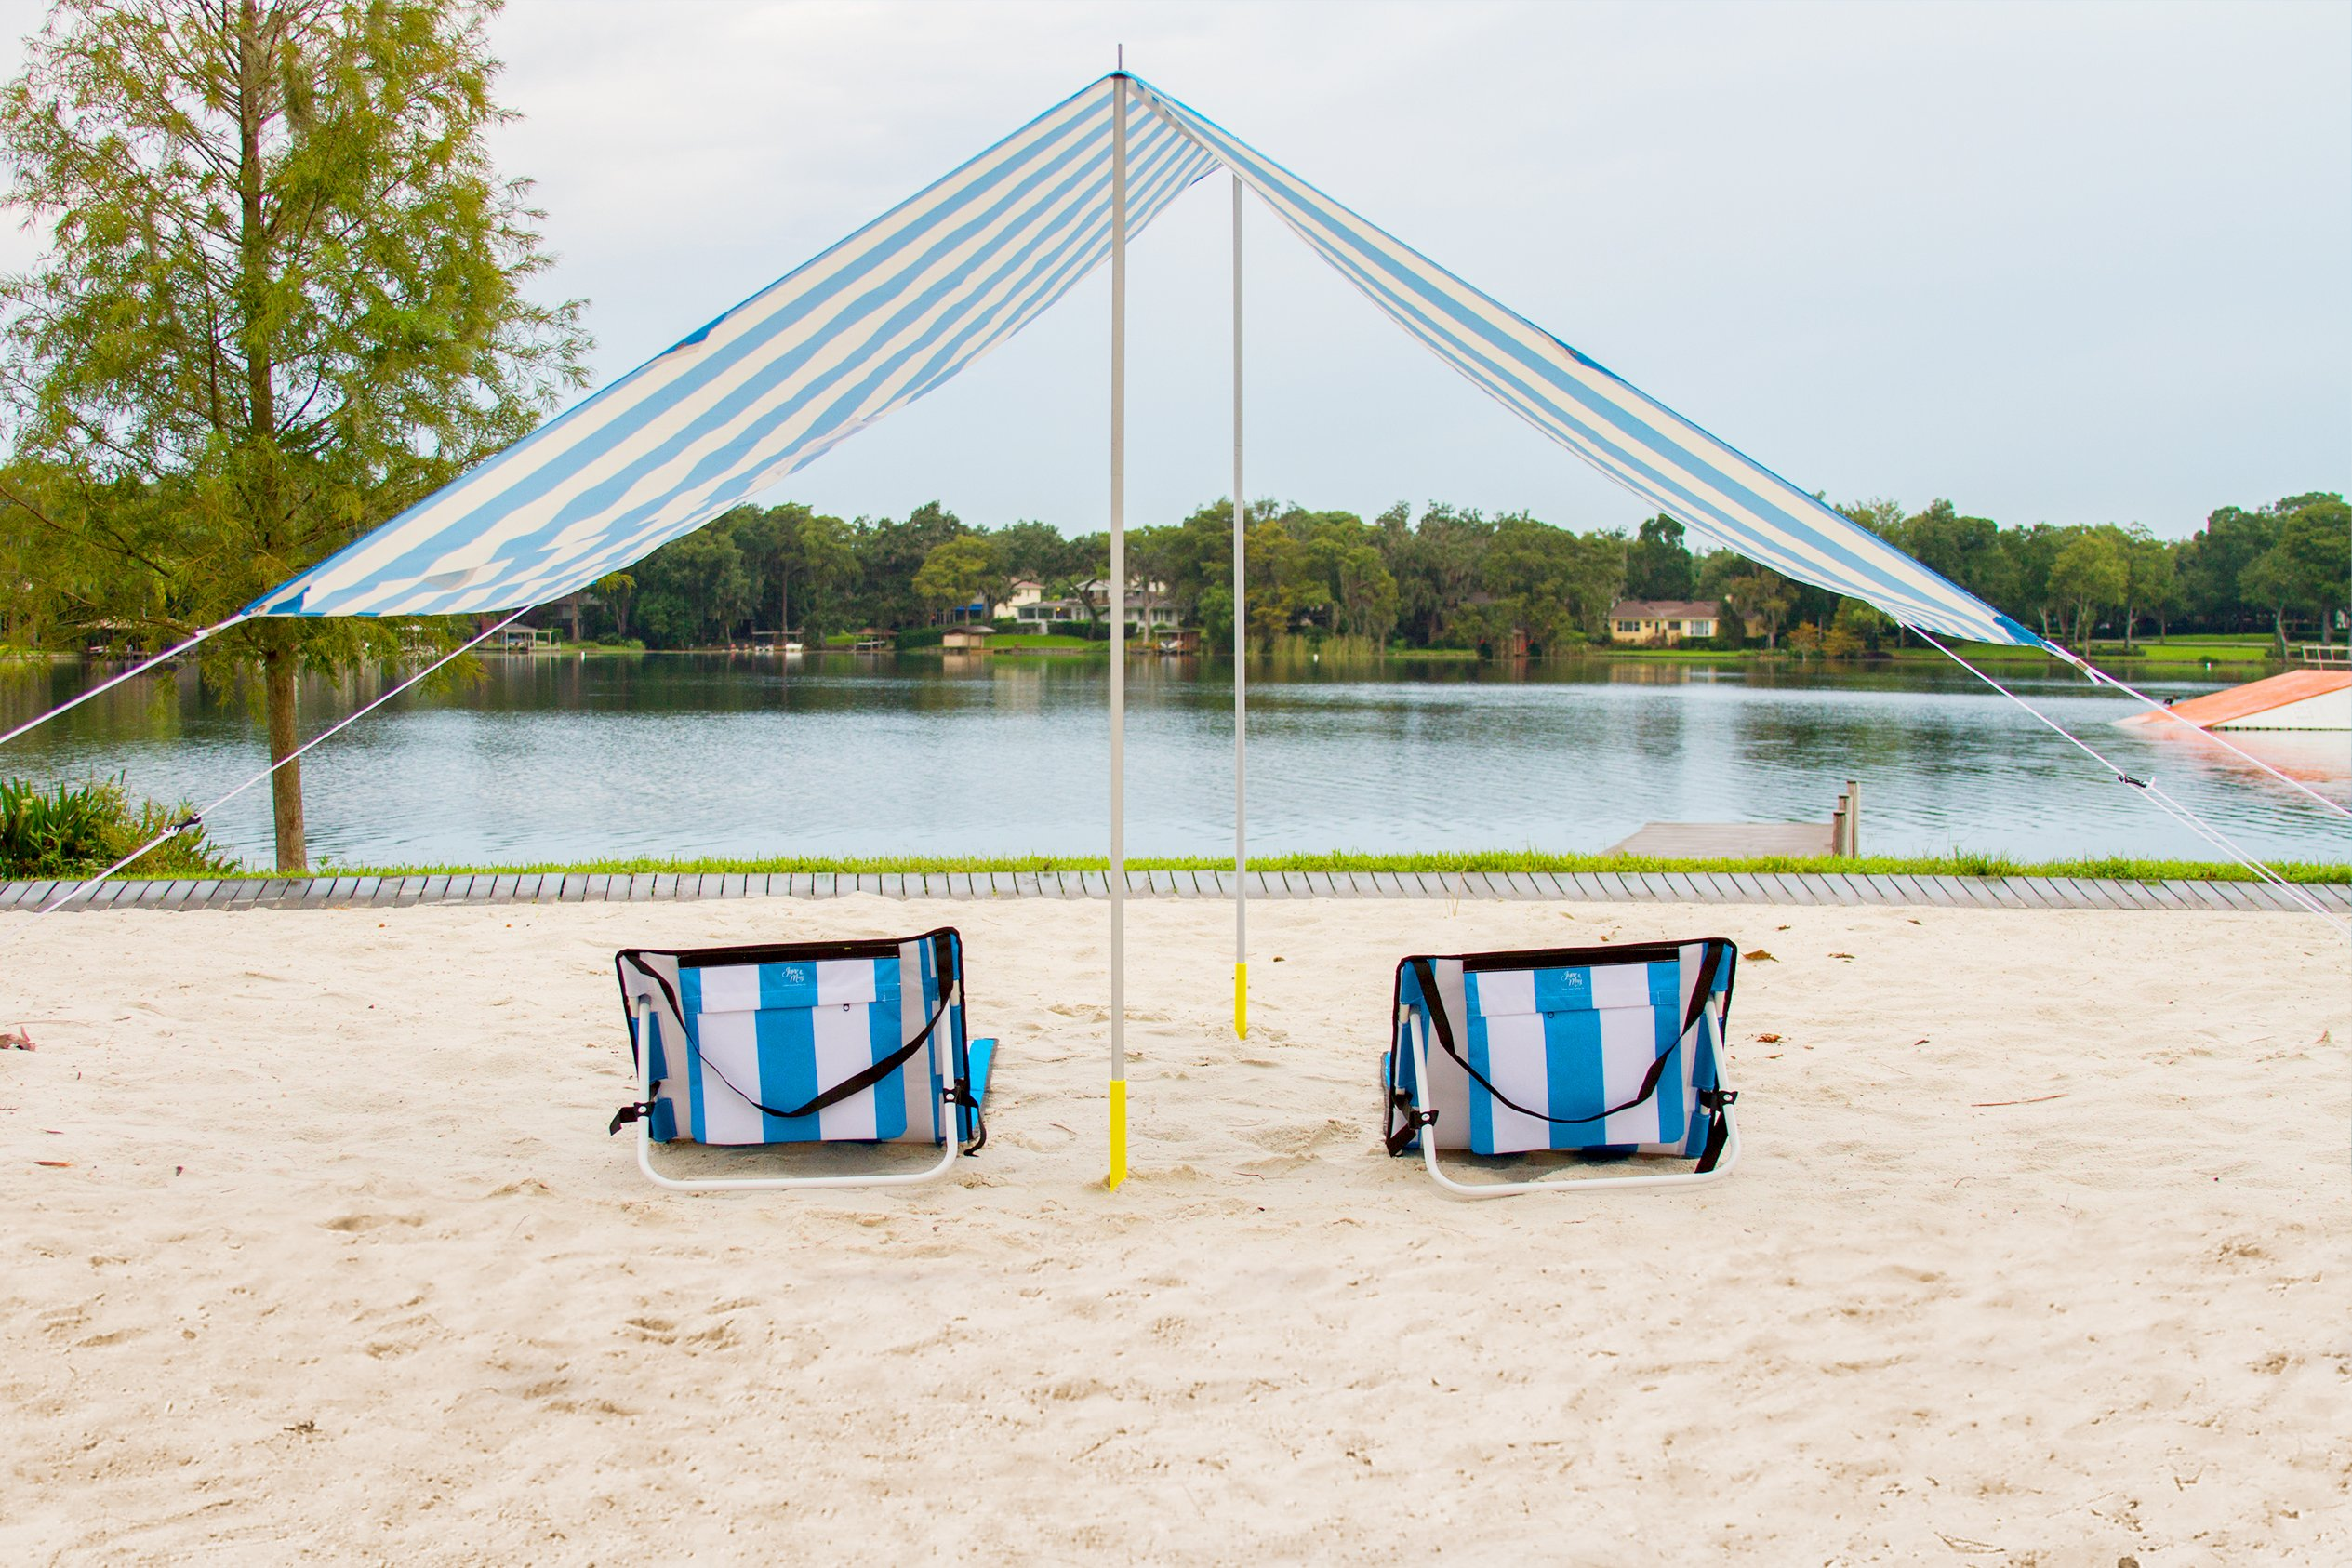 June & May Beach Chair - Compact, Portable, Light-weight, Easy Set-Up, with Storage Pouch and Adjustable Back Beach Chair